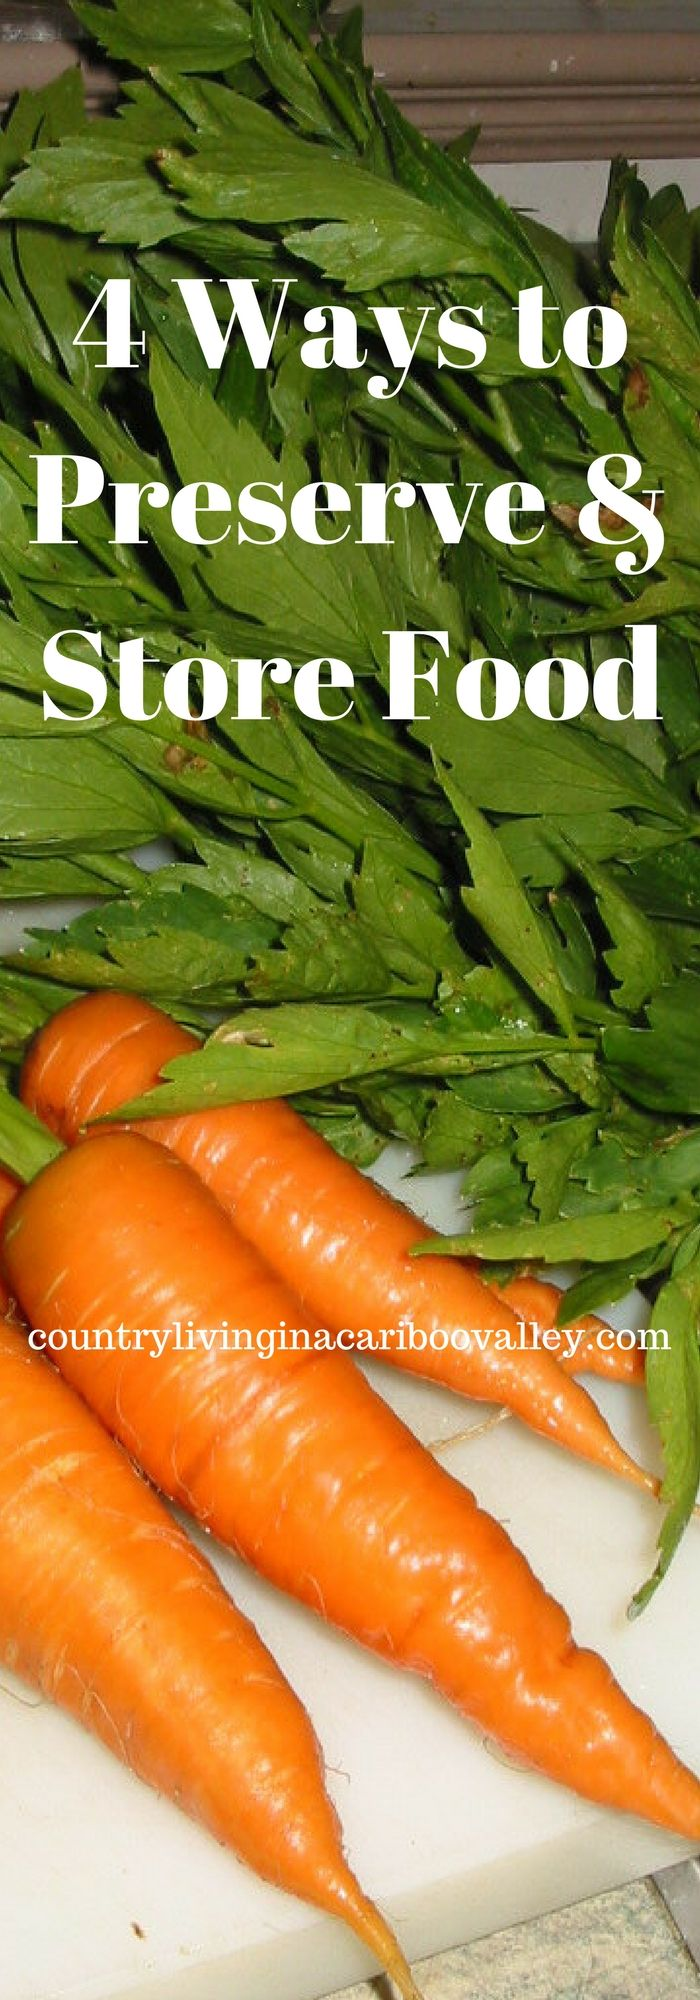 Kitchen Garden Preserves Heres How To Preserve And Store All That Garden Harvest Goodness